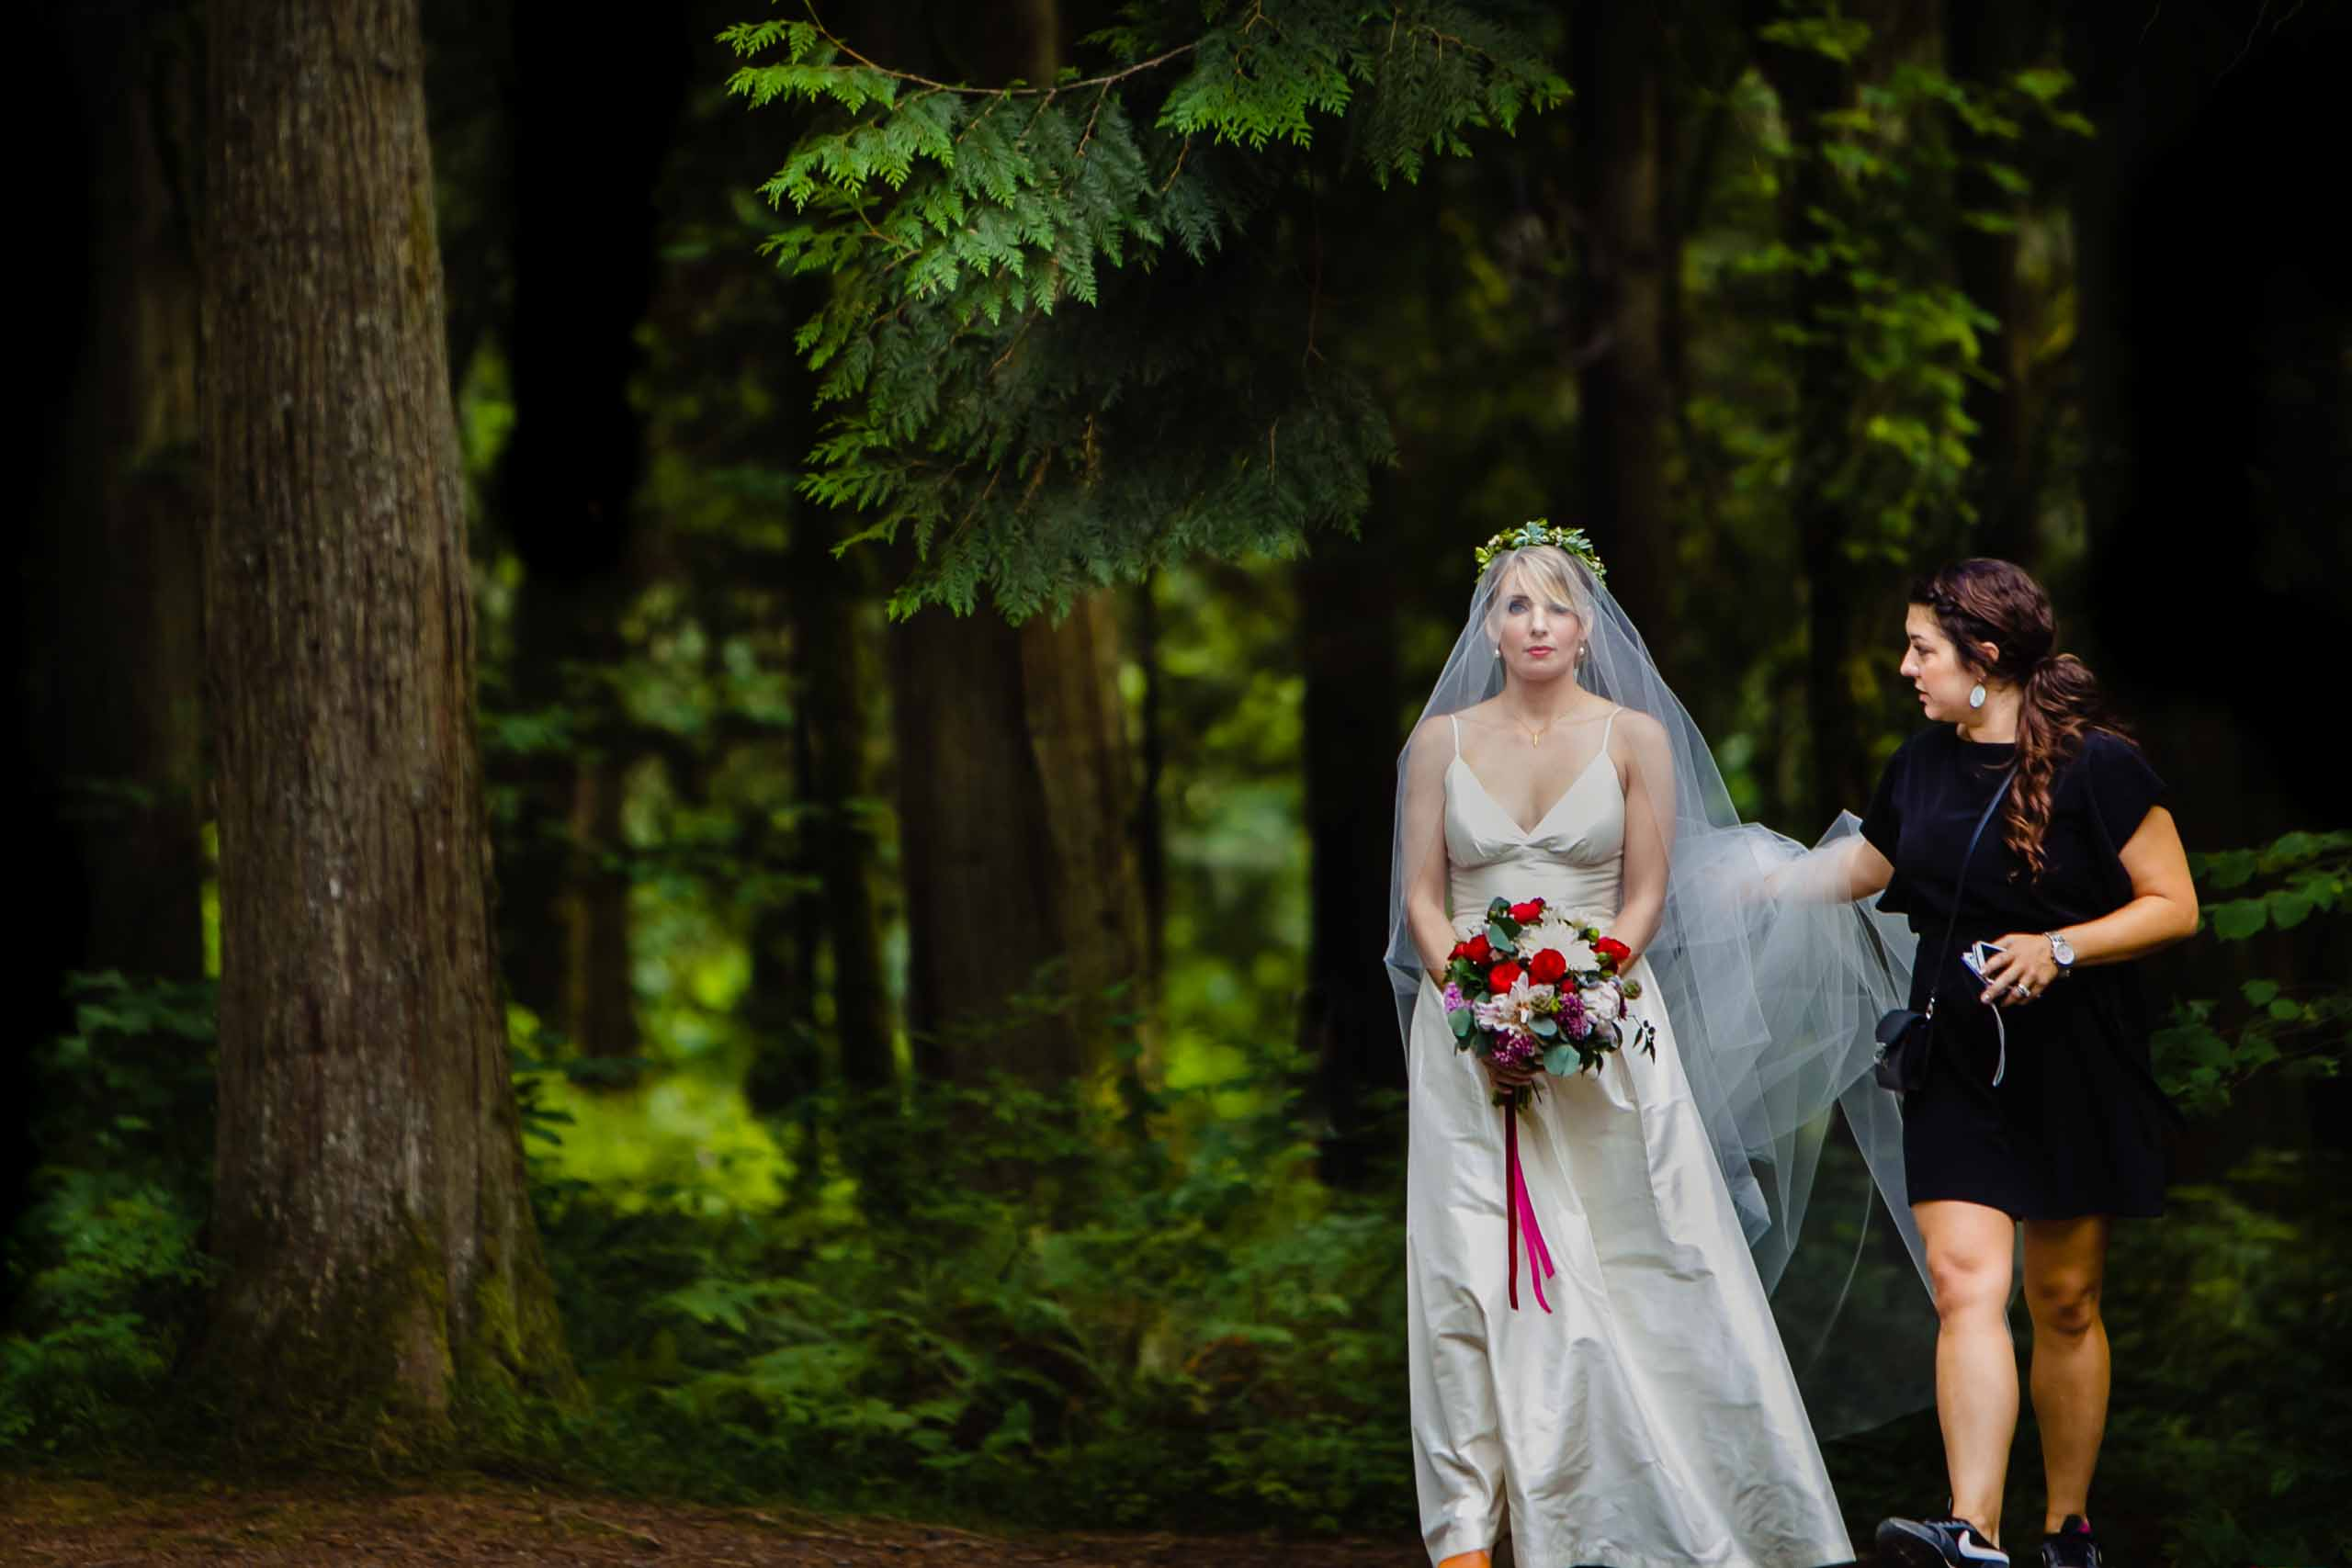 A bride walking with Misty Daminco while heading into her camp angleos wedding ceremony with Luxe Productions